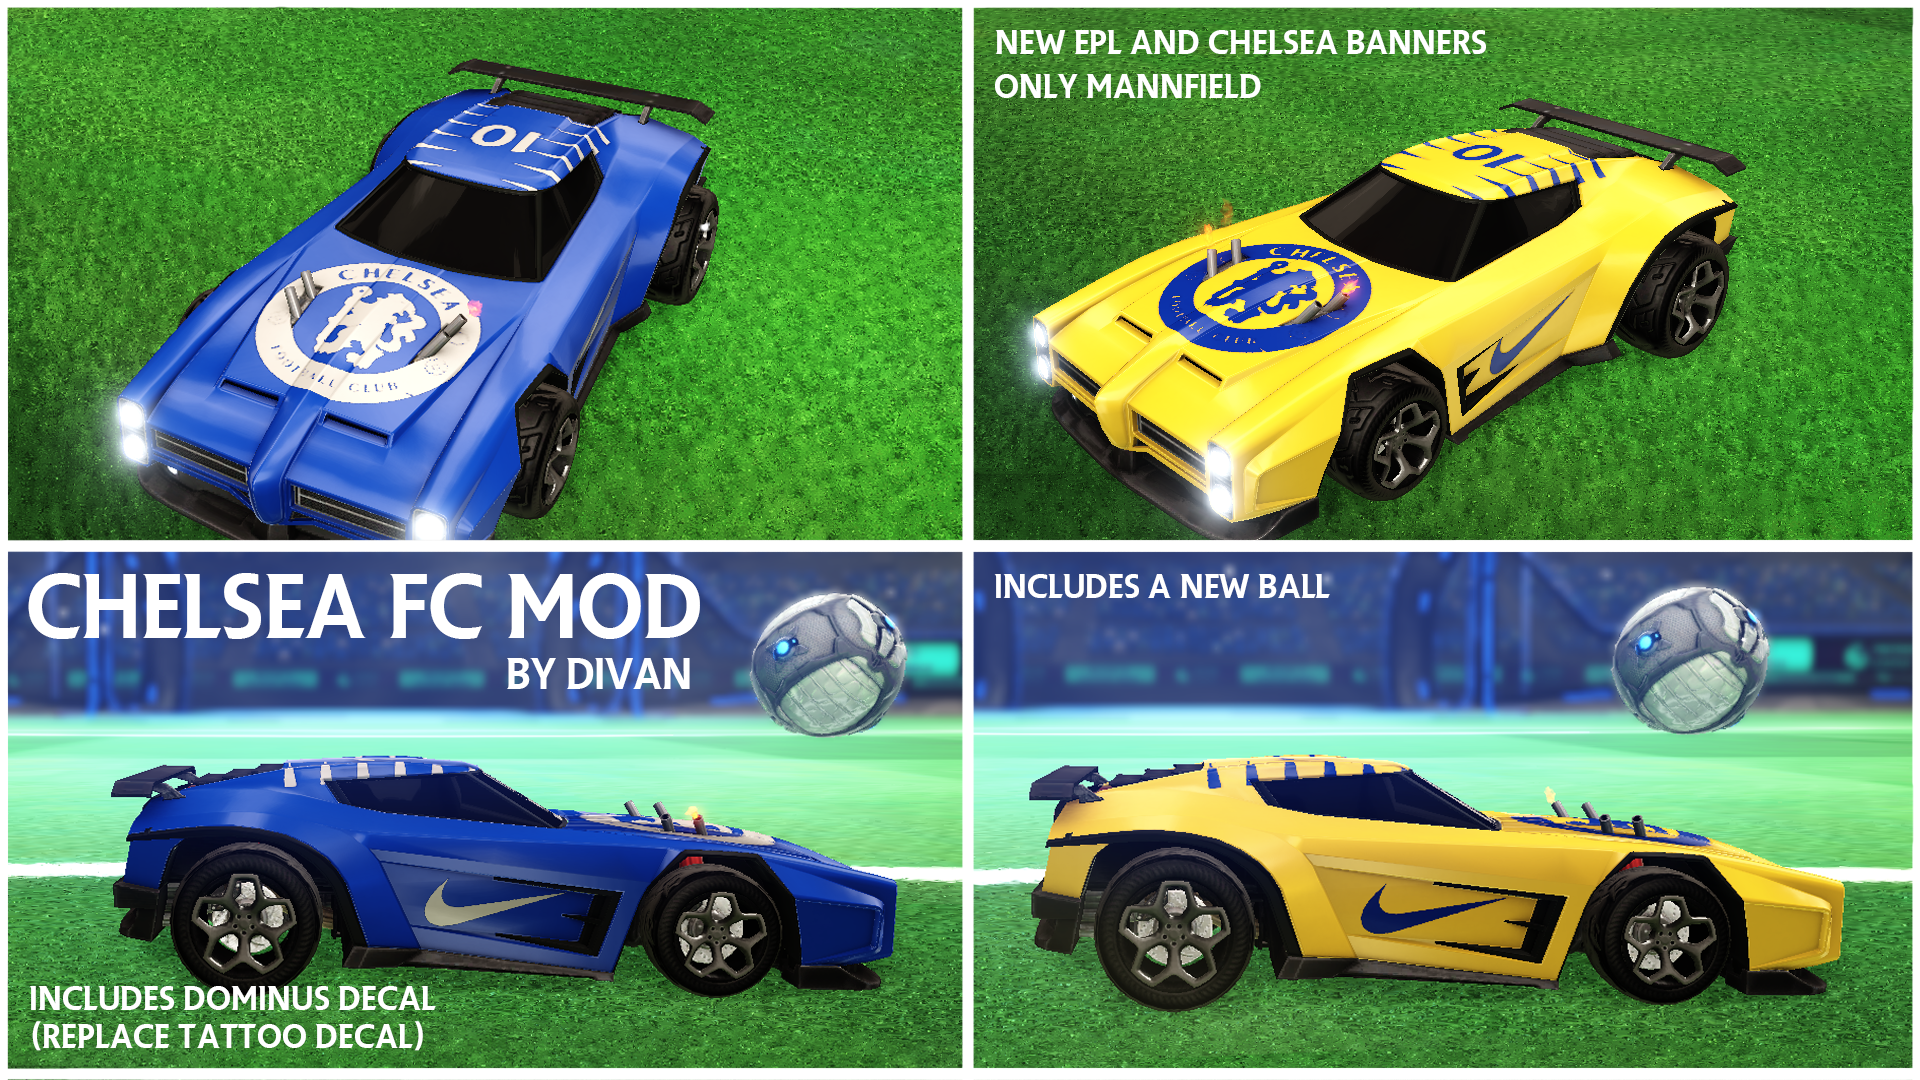 CHELSEA FOOTBALL CLUB AND EPL MOD